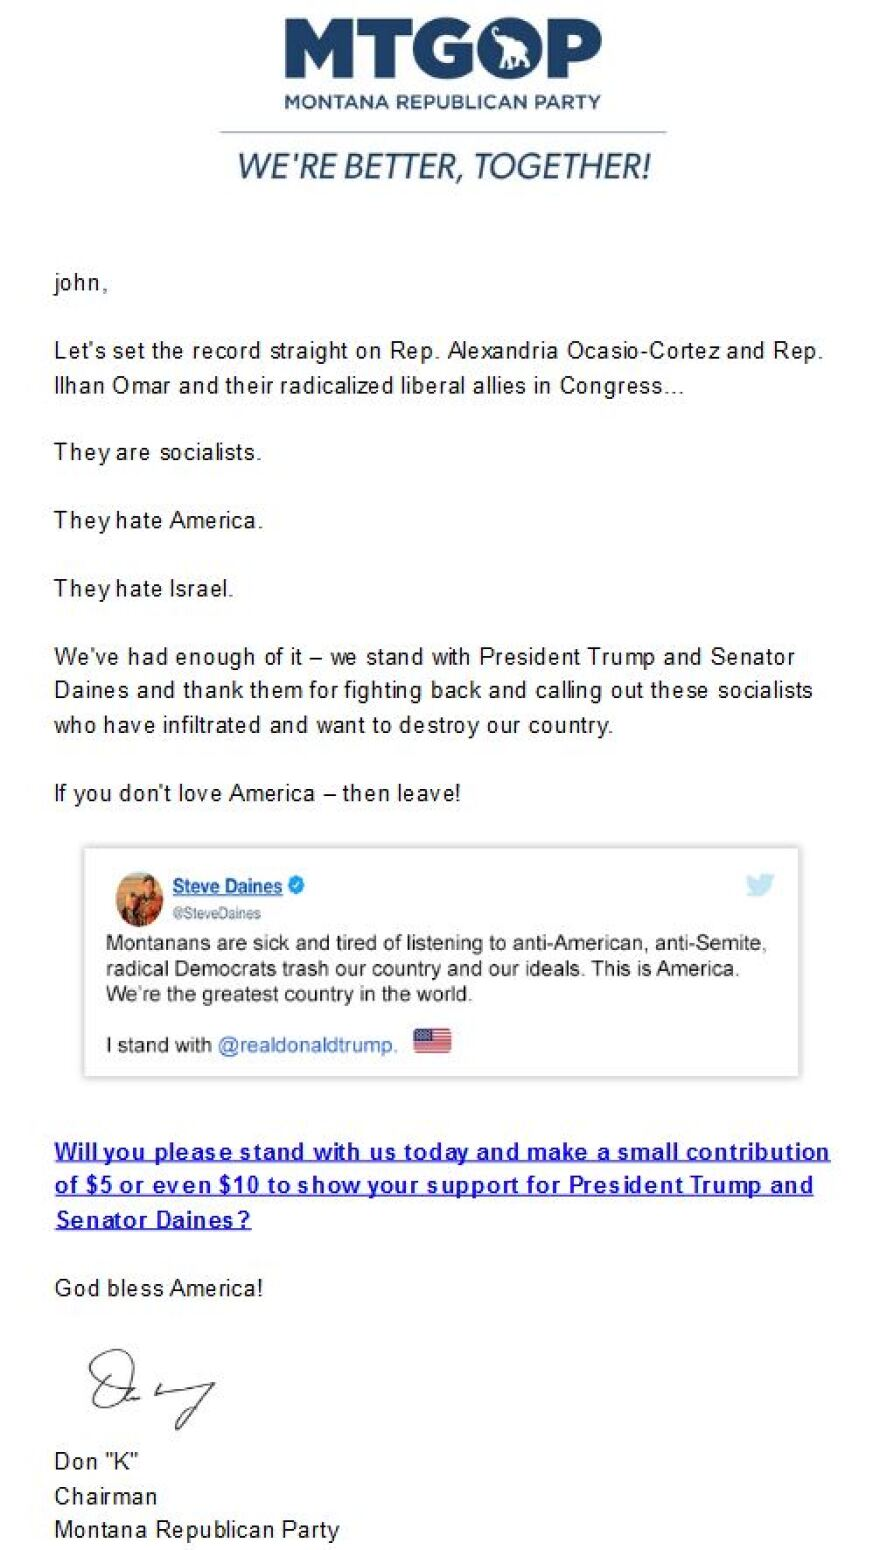 Screen capture of a Montana Republican Party fundraising email